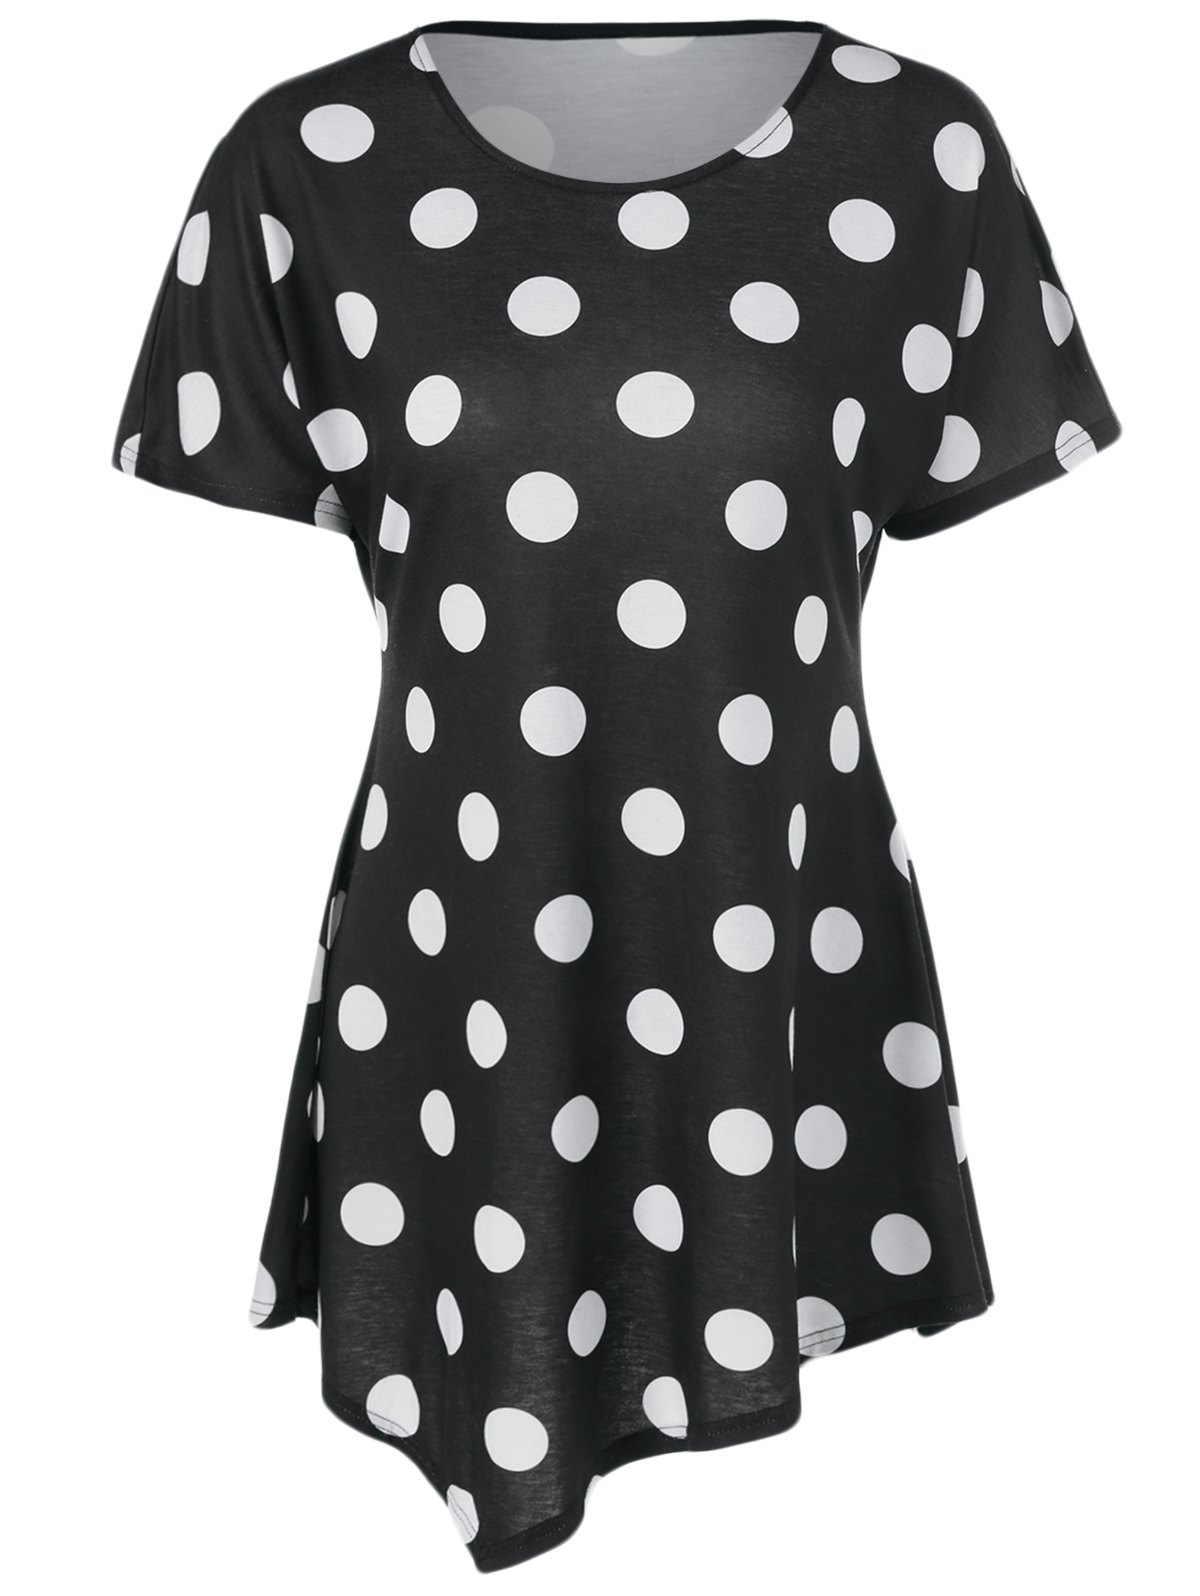 Polka Dot Print Asymmetrical Dress - WHITE/BLACK L